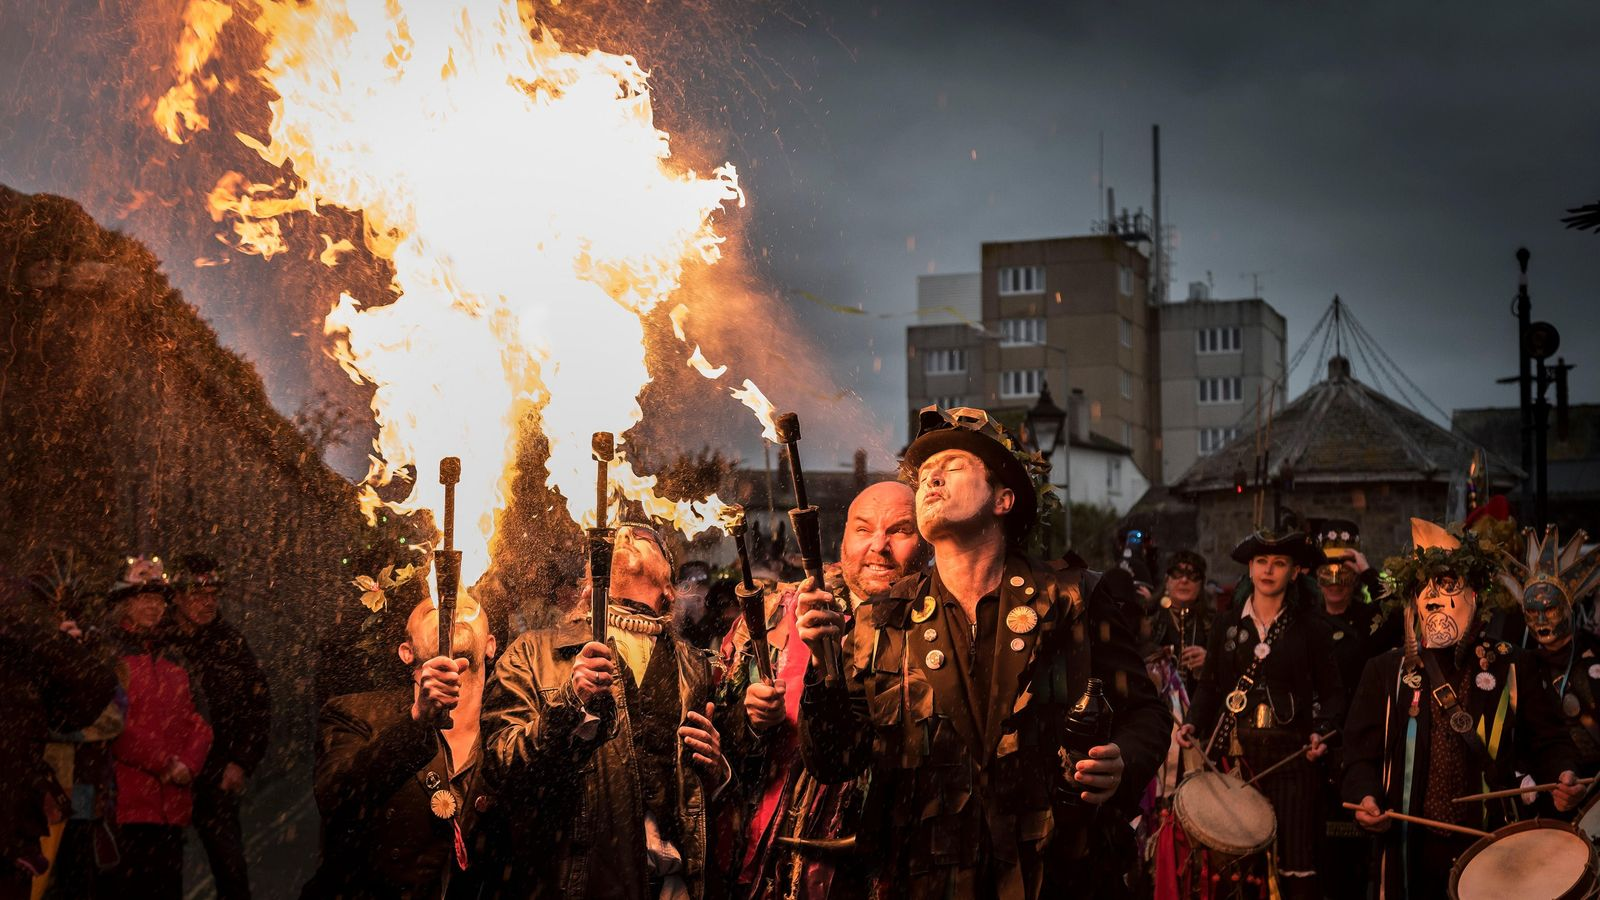 The annual Montol festival in Penzance celebrates traditional Cornish culture every December. While Cornish is celebrated ...